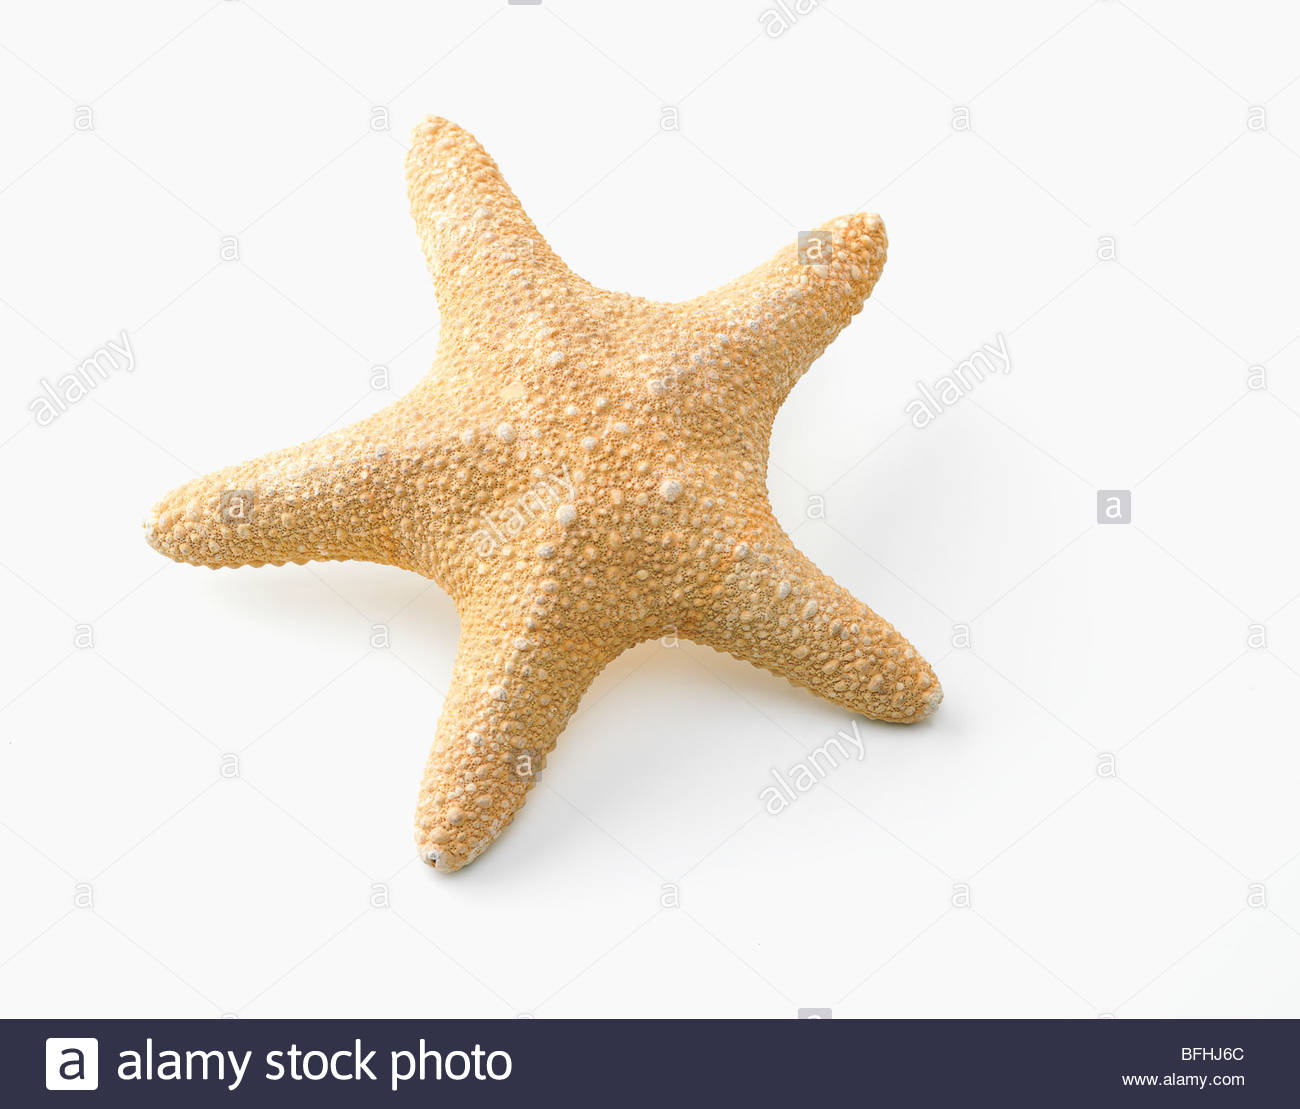 starfish dried and laid out flat - Stock Image